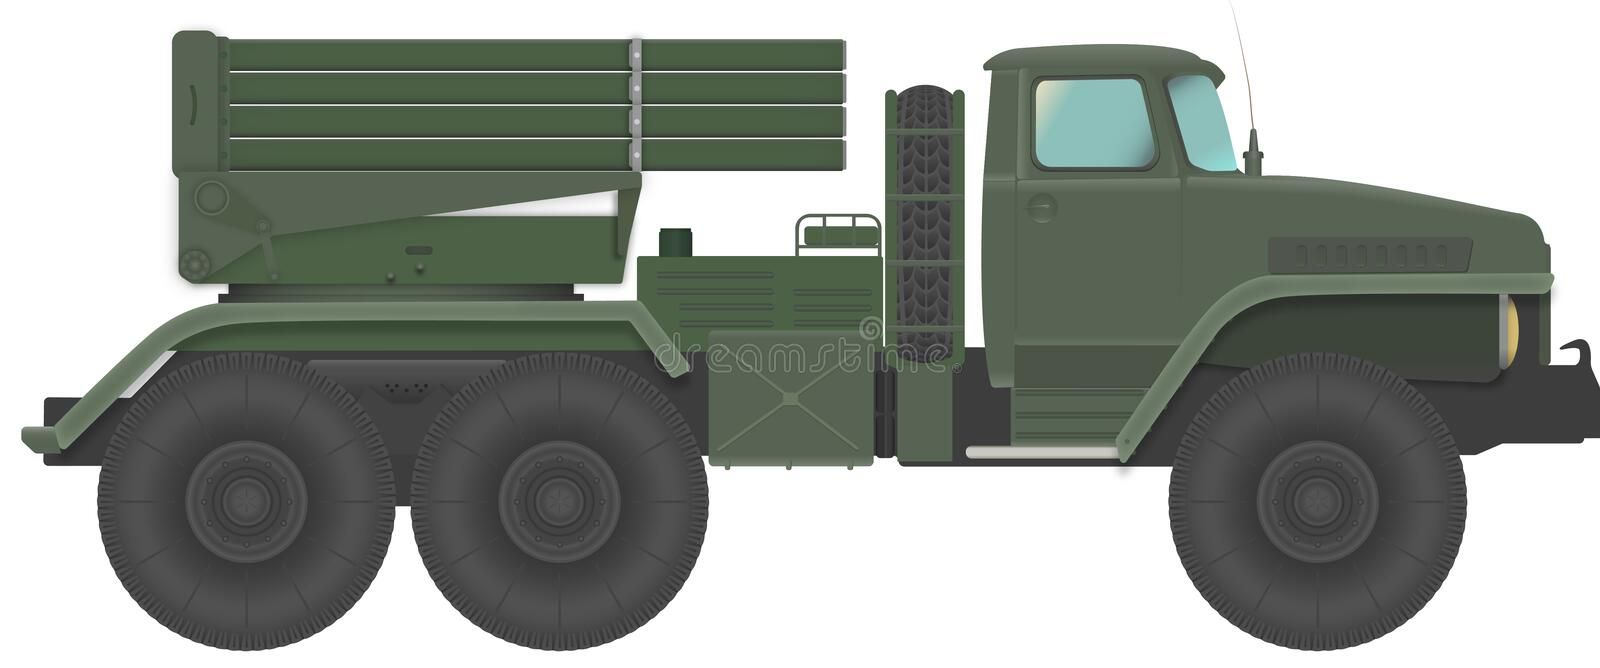 Soviet russo Rocket Launcher Grad royalty illustrazione gratis